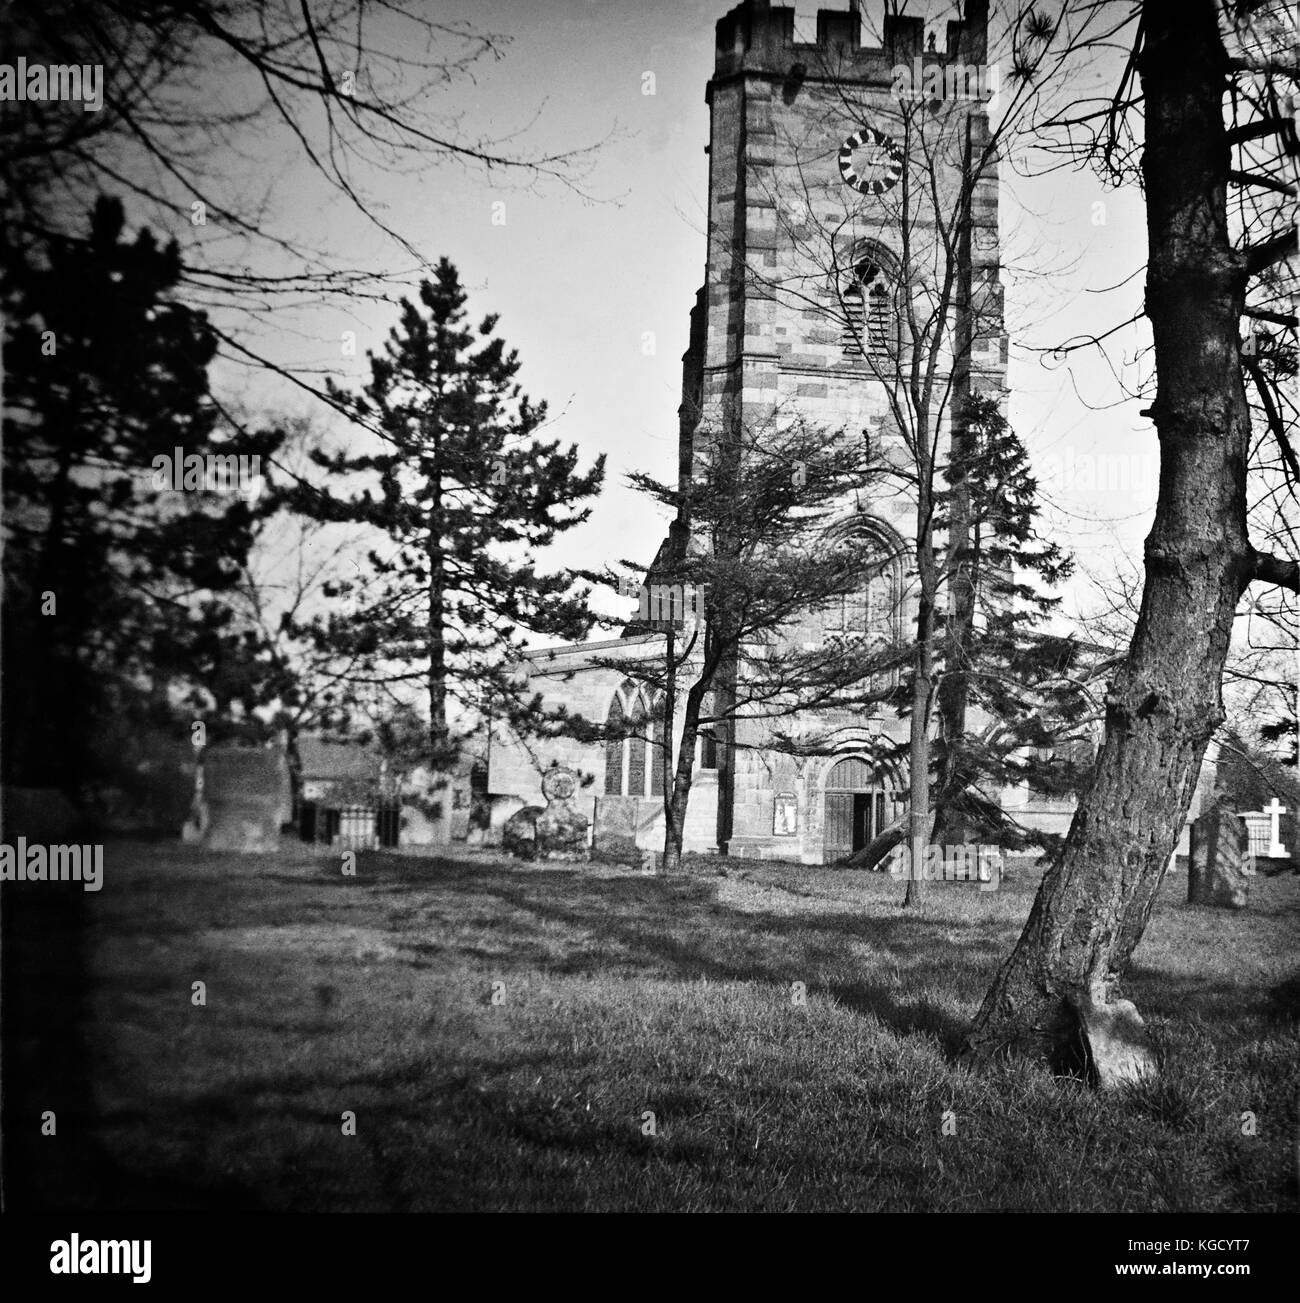 Shropshire Historical images in the UK, photographs from another century.  Lost historical scenic's in 1900 - Stock Image